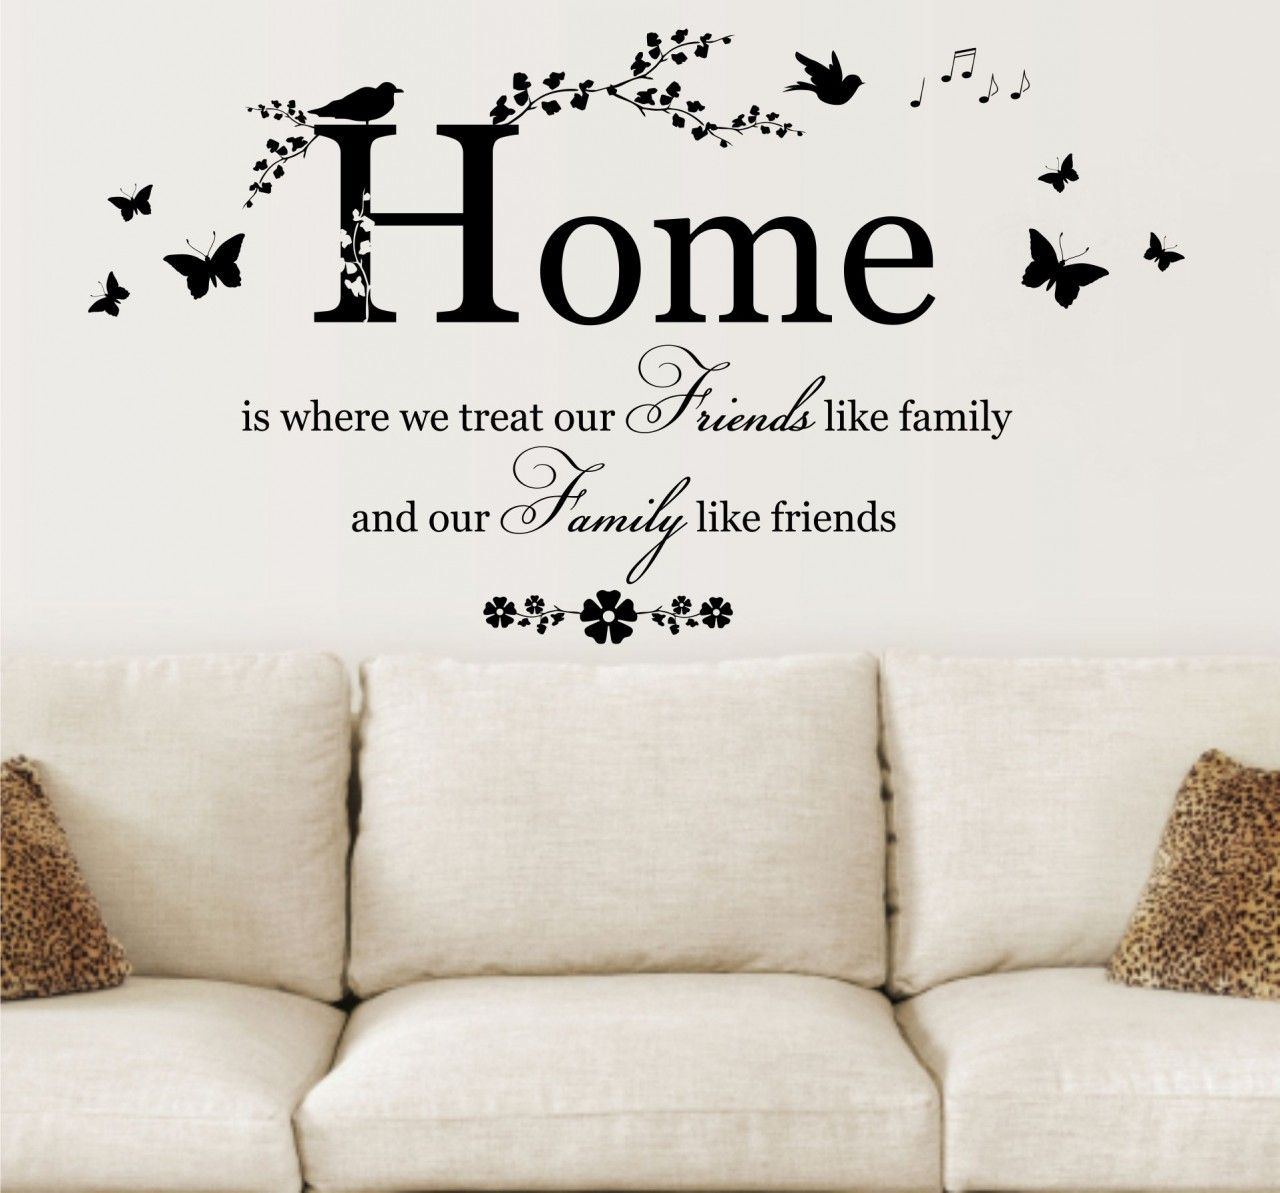 Home quotes images google search printables pinterest home quotes images google search family wall amipublicfo Choice Image